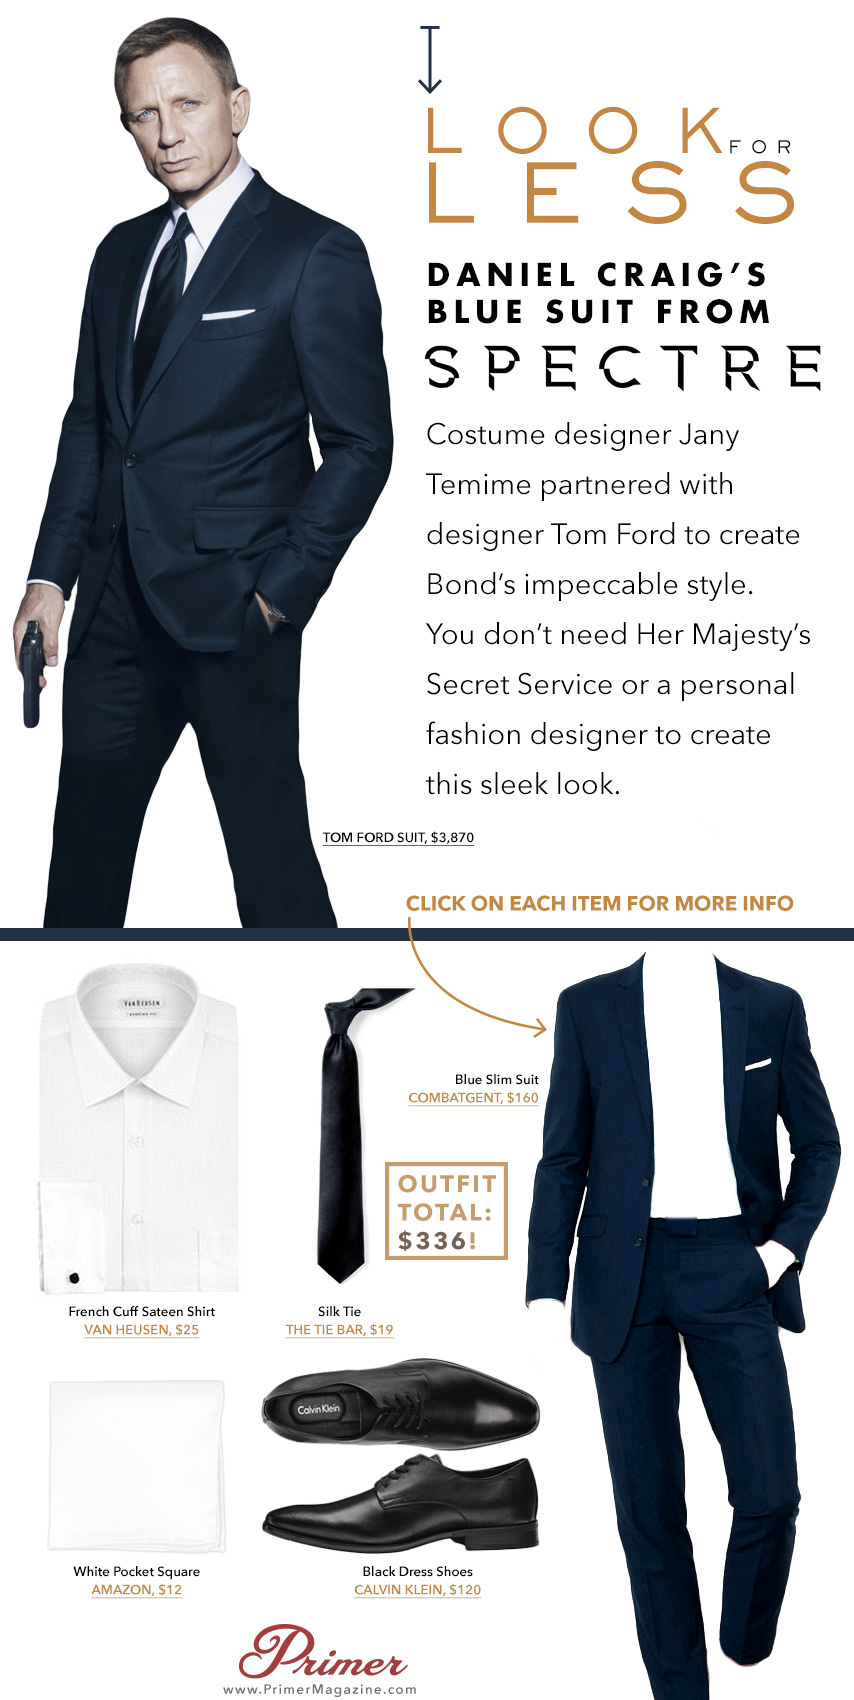 Daniel Craig Suits Spectre